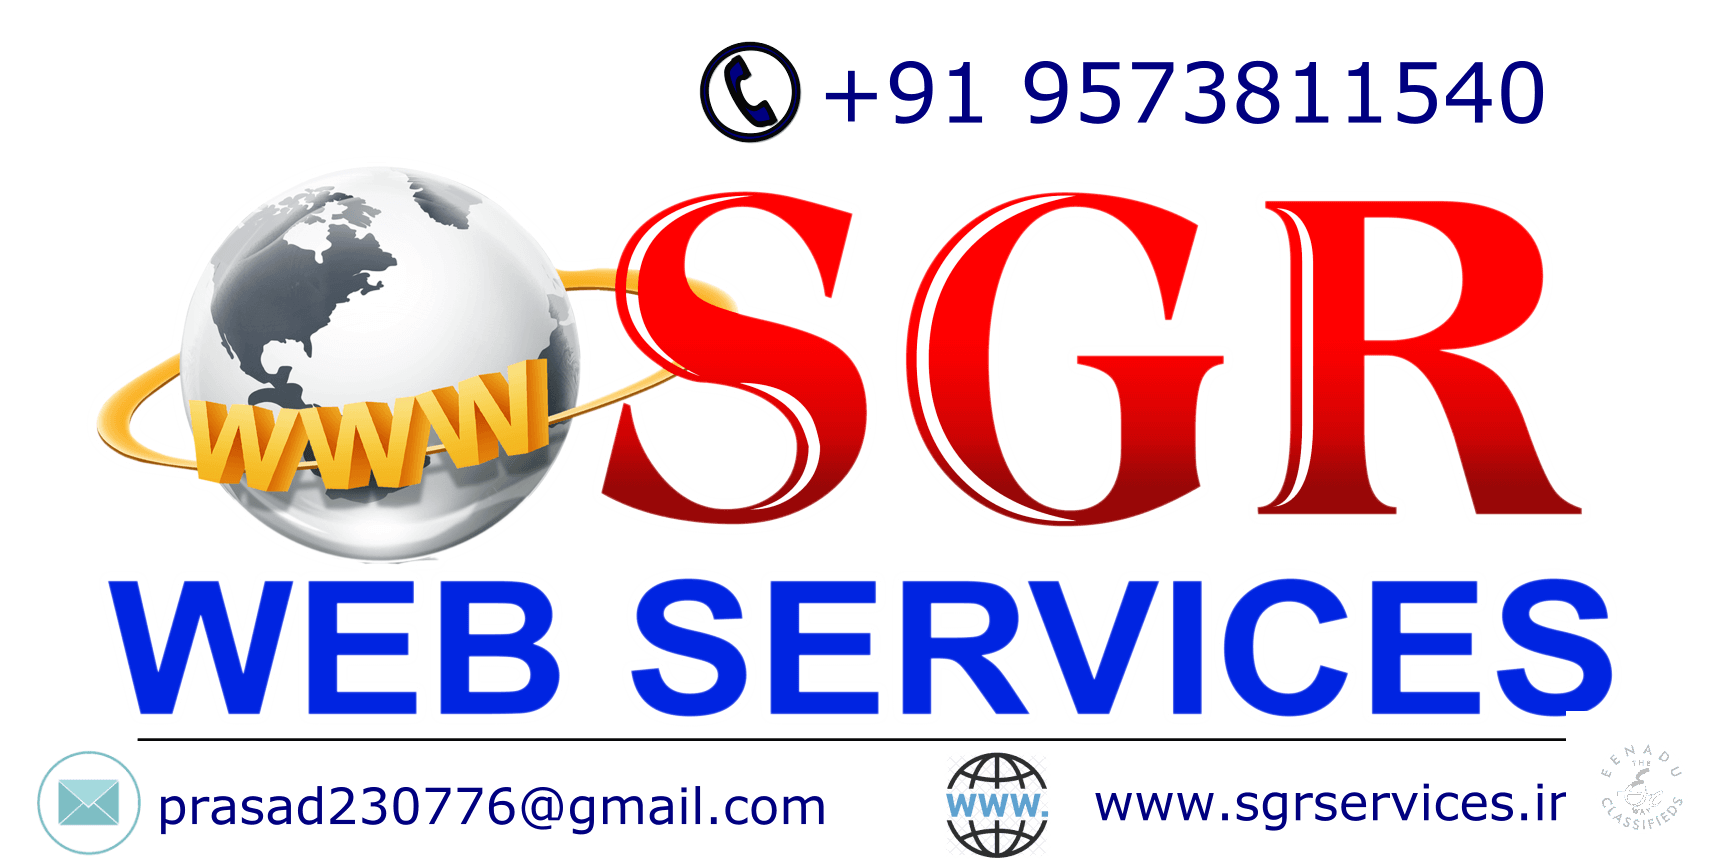 Website Service In Chittoor